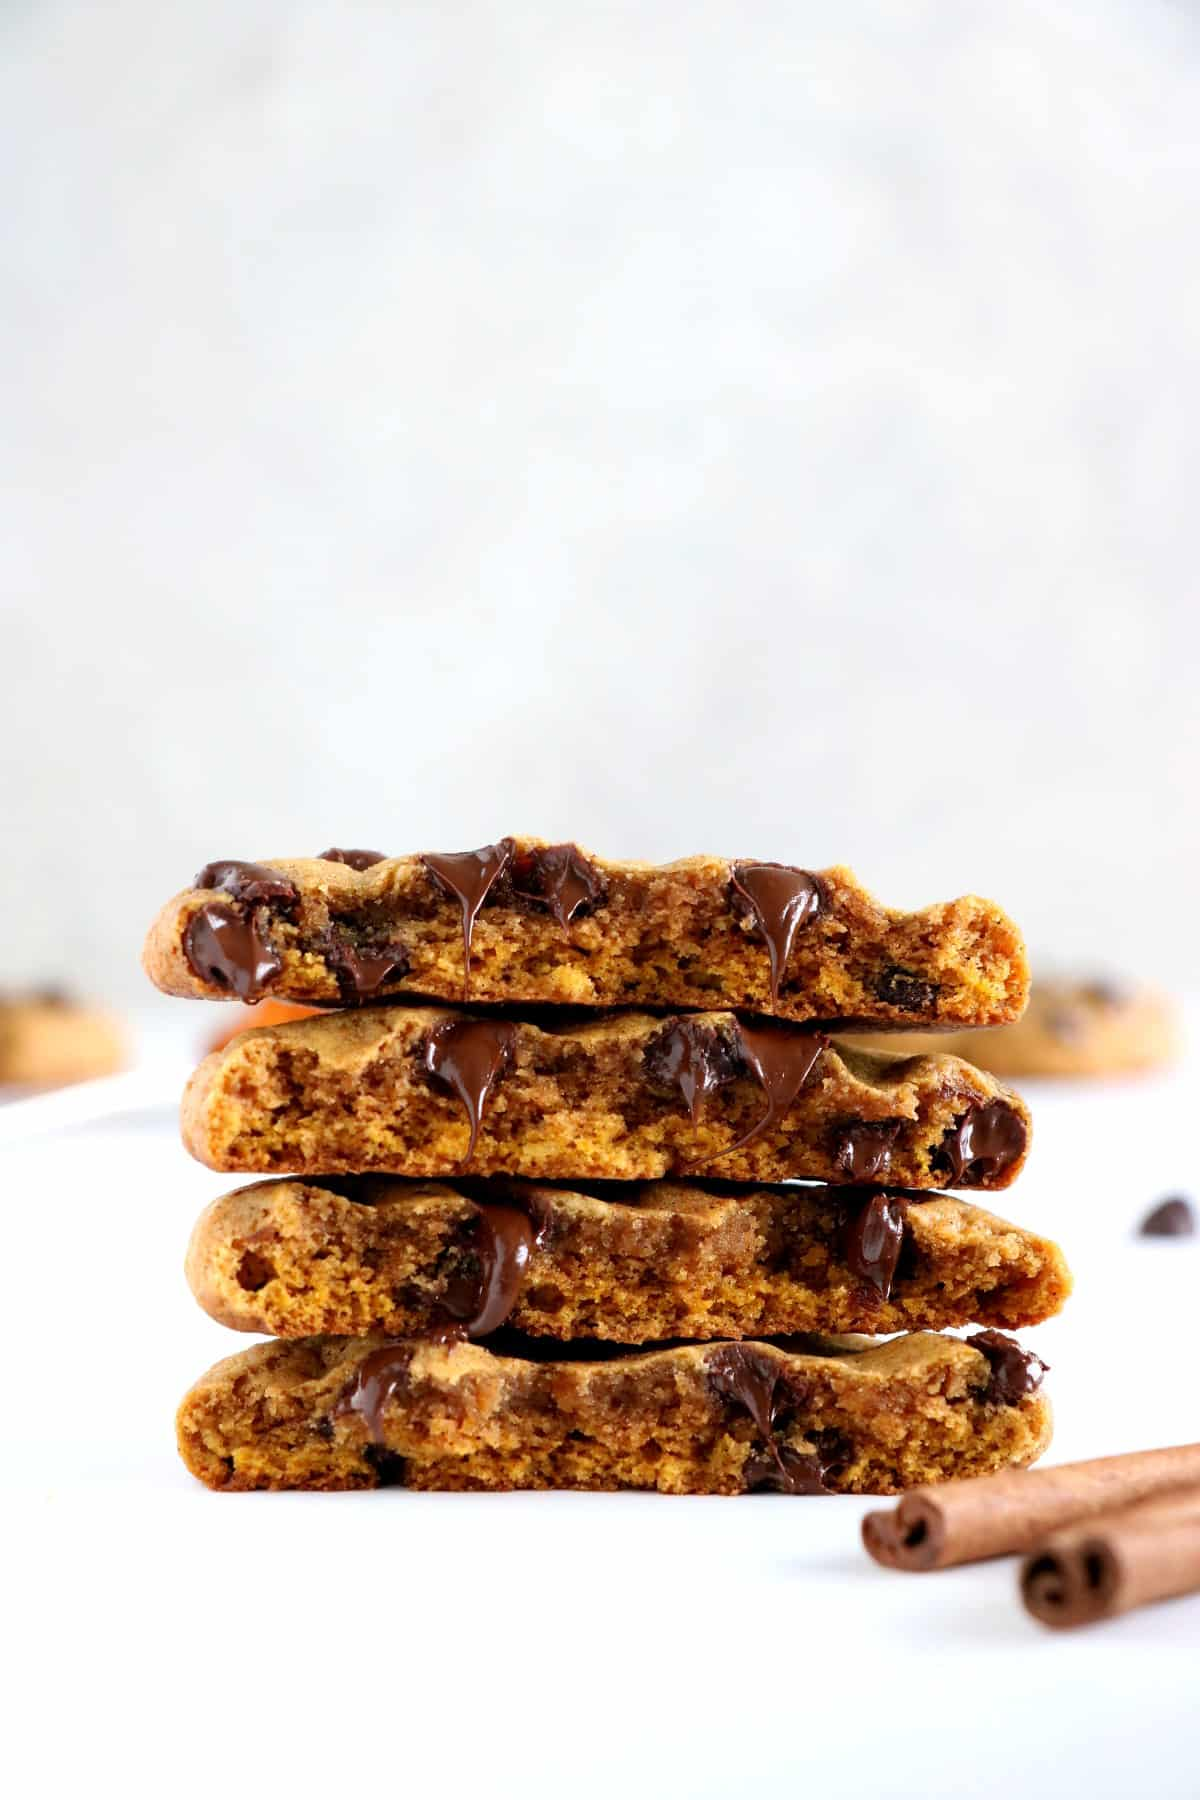 Best ever Pumpkin Chocolate Chip Cookies. Soft and chewy in texture (not cakey), loaded with chocolate chips and packed with cozy spices. A must try this fall!